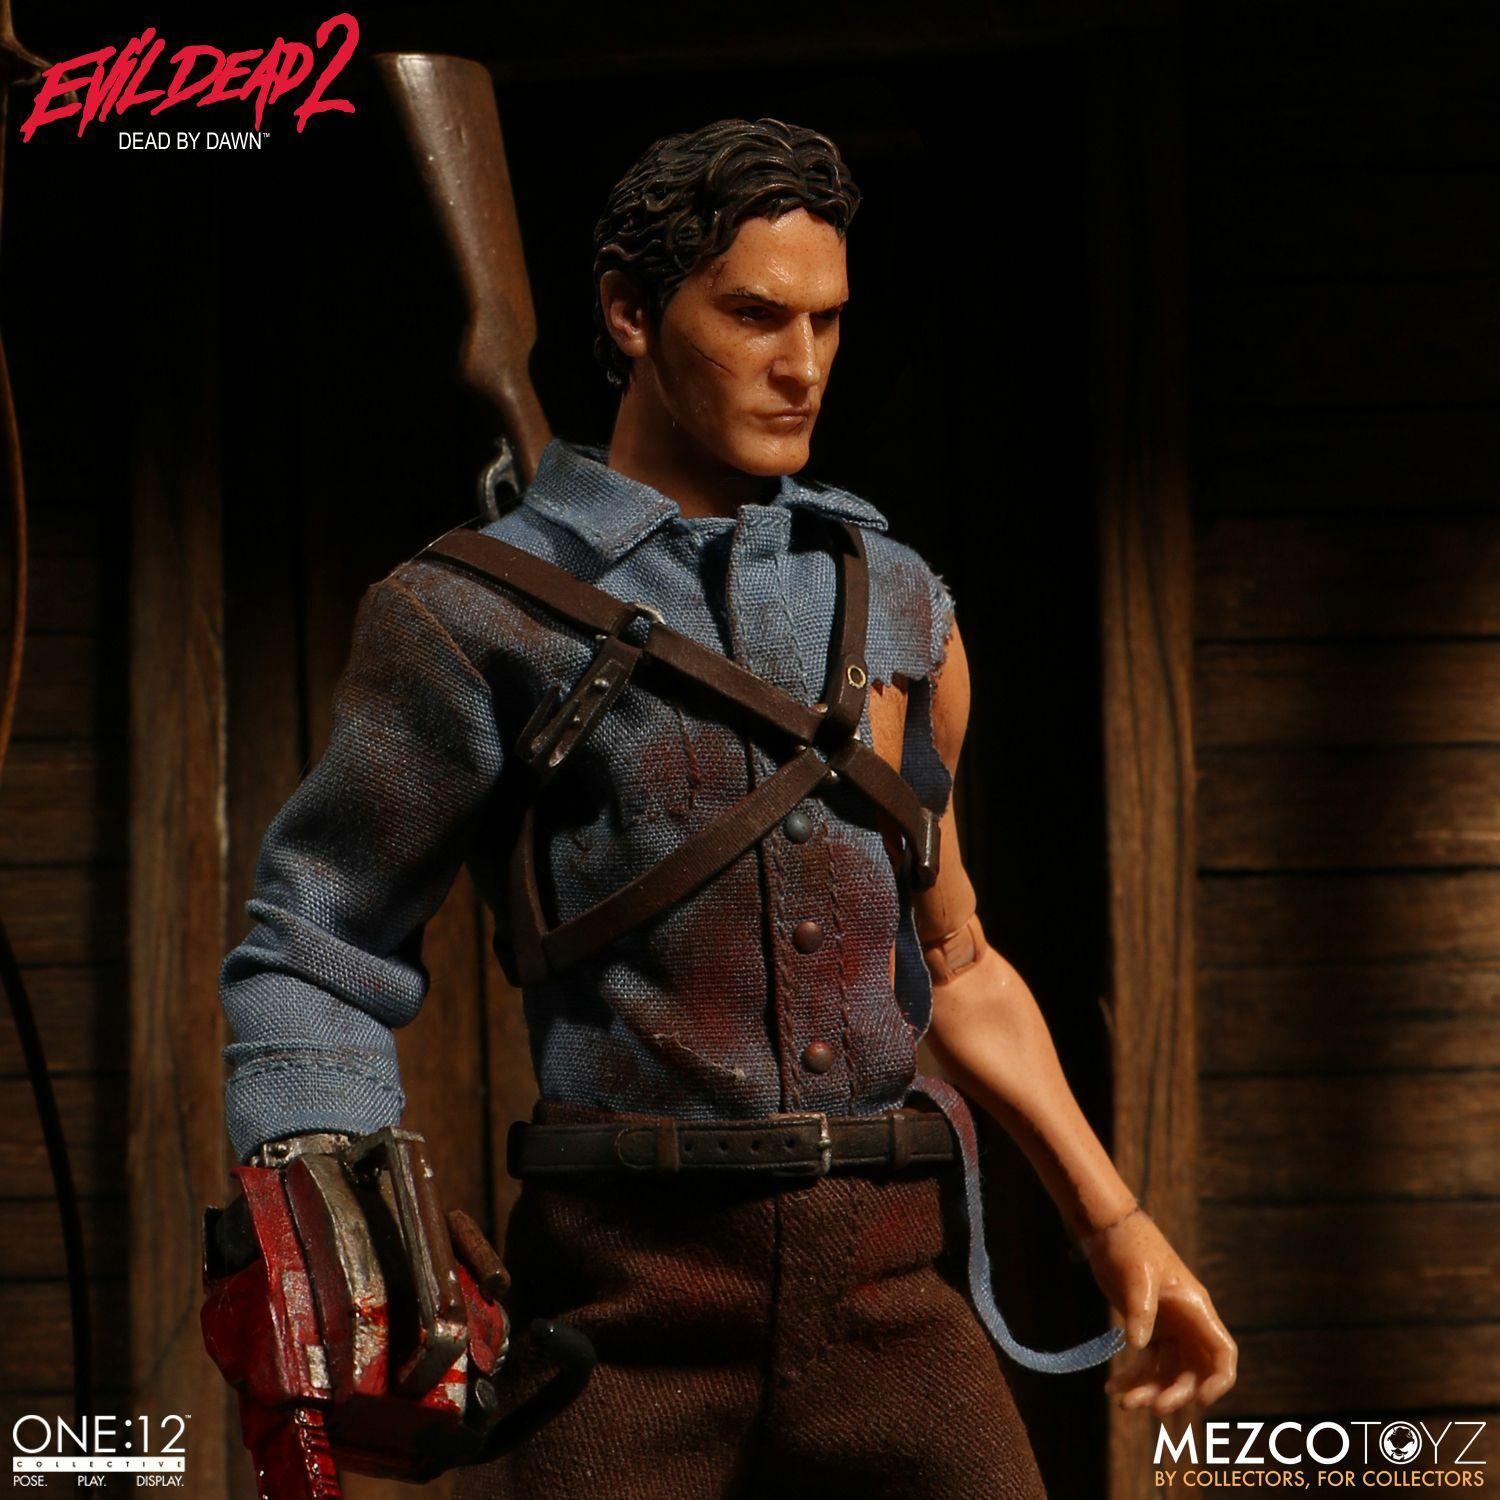 MEZCO ONE 12 COLLECTIVE ASH FROM EVIL DEAD 2